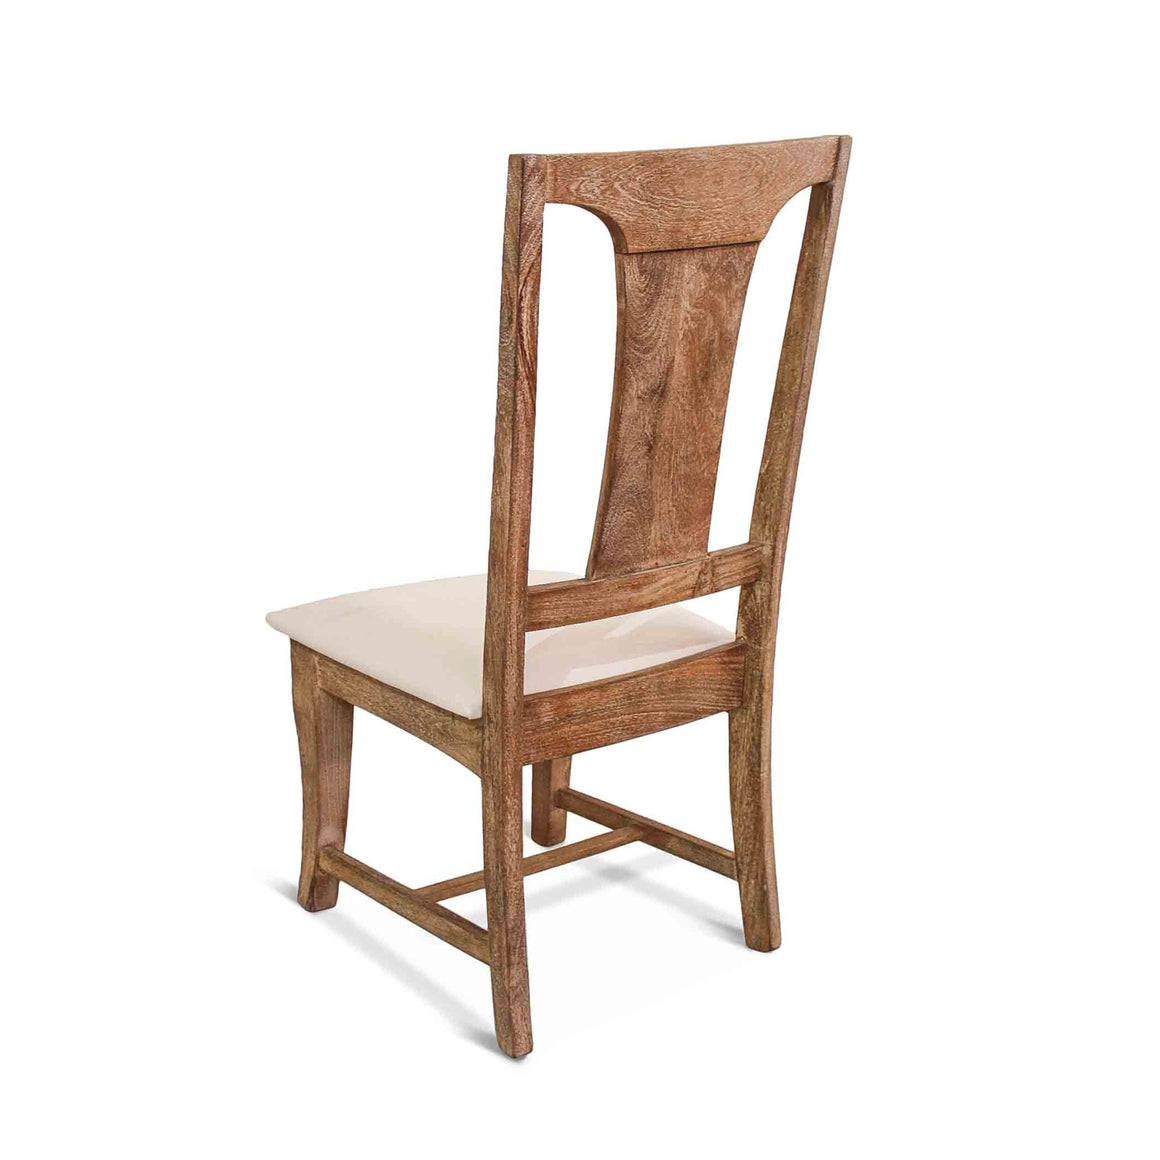 Pengrove Upholstered Dining Chairs, Pair